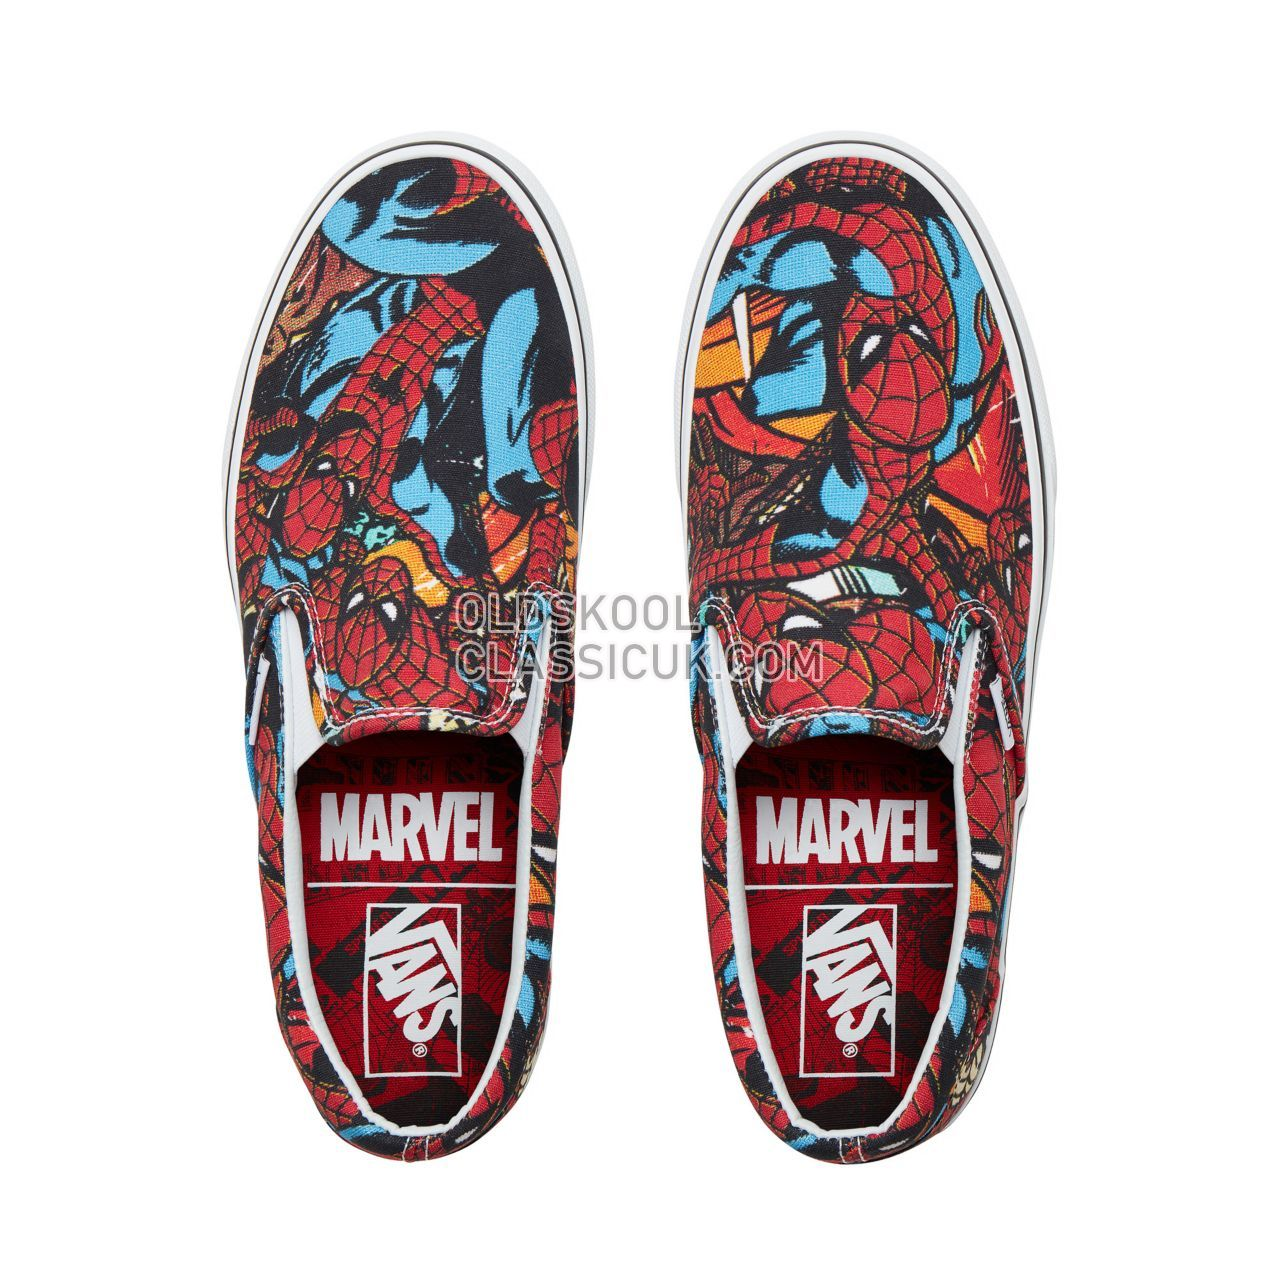 Vans X Marvel Classic Slip-On Sneakers Mens (Marvel) Spider-Man/Black VA38F79H7 Shoes